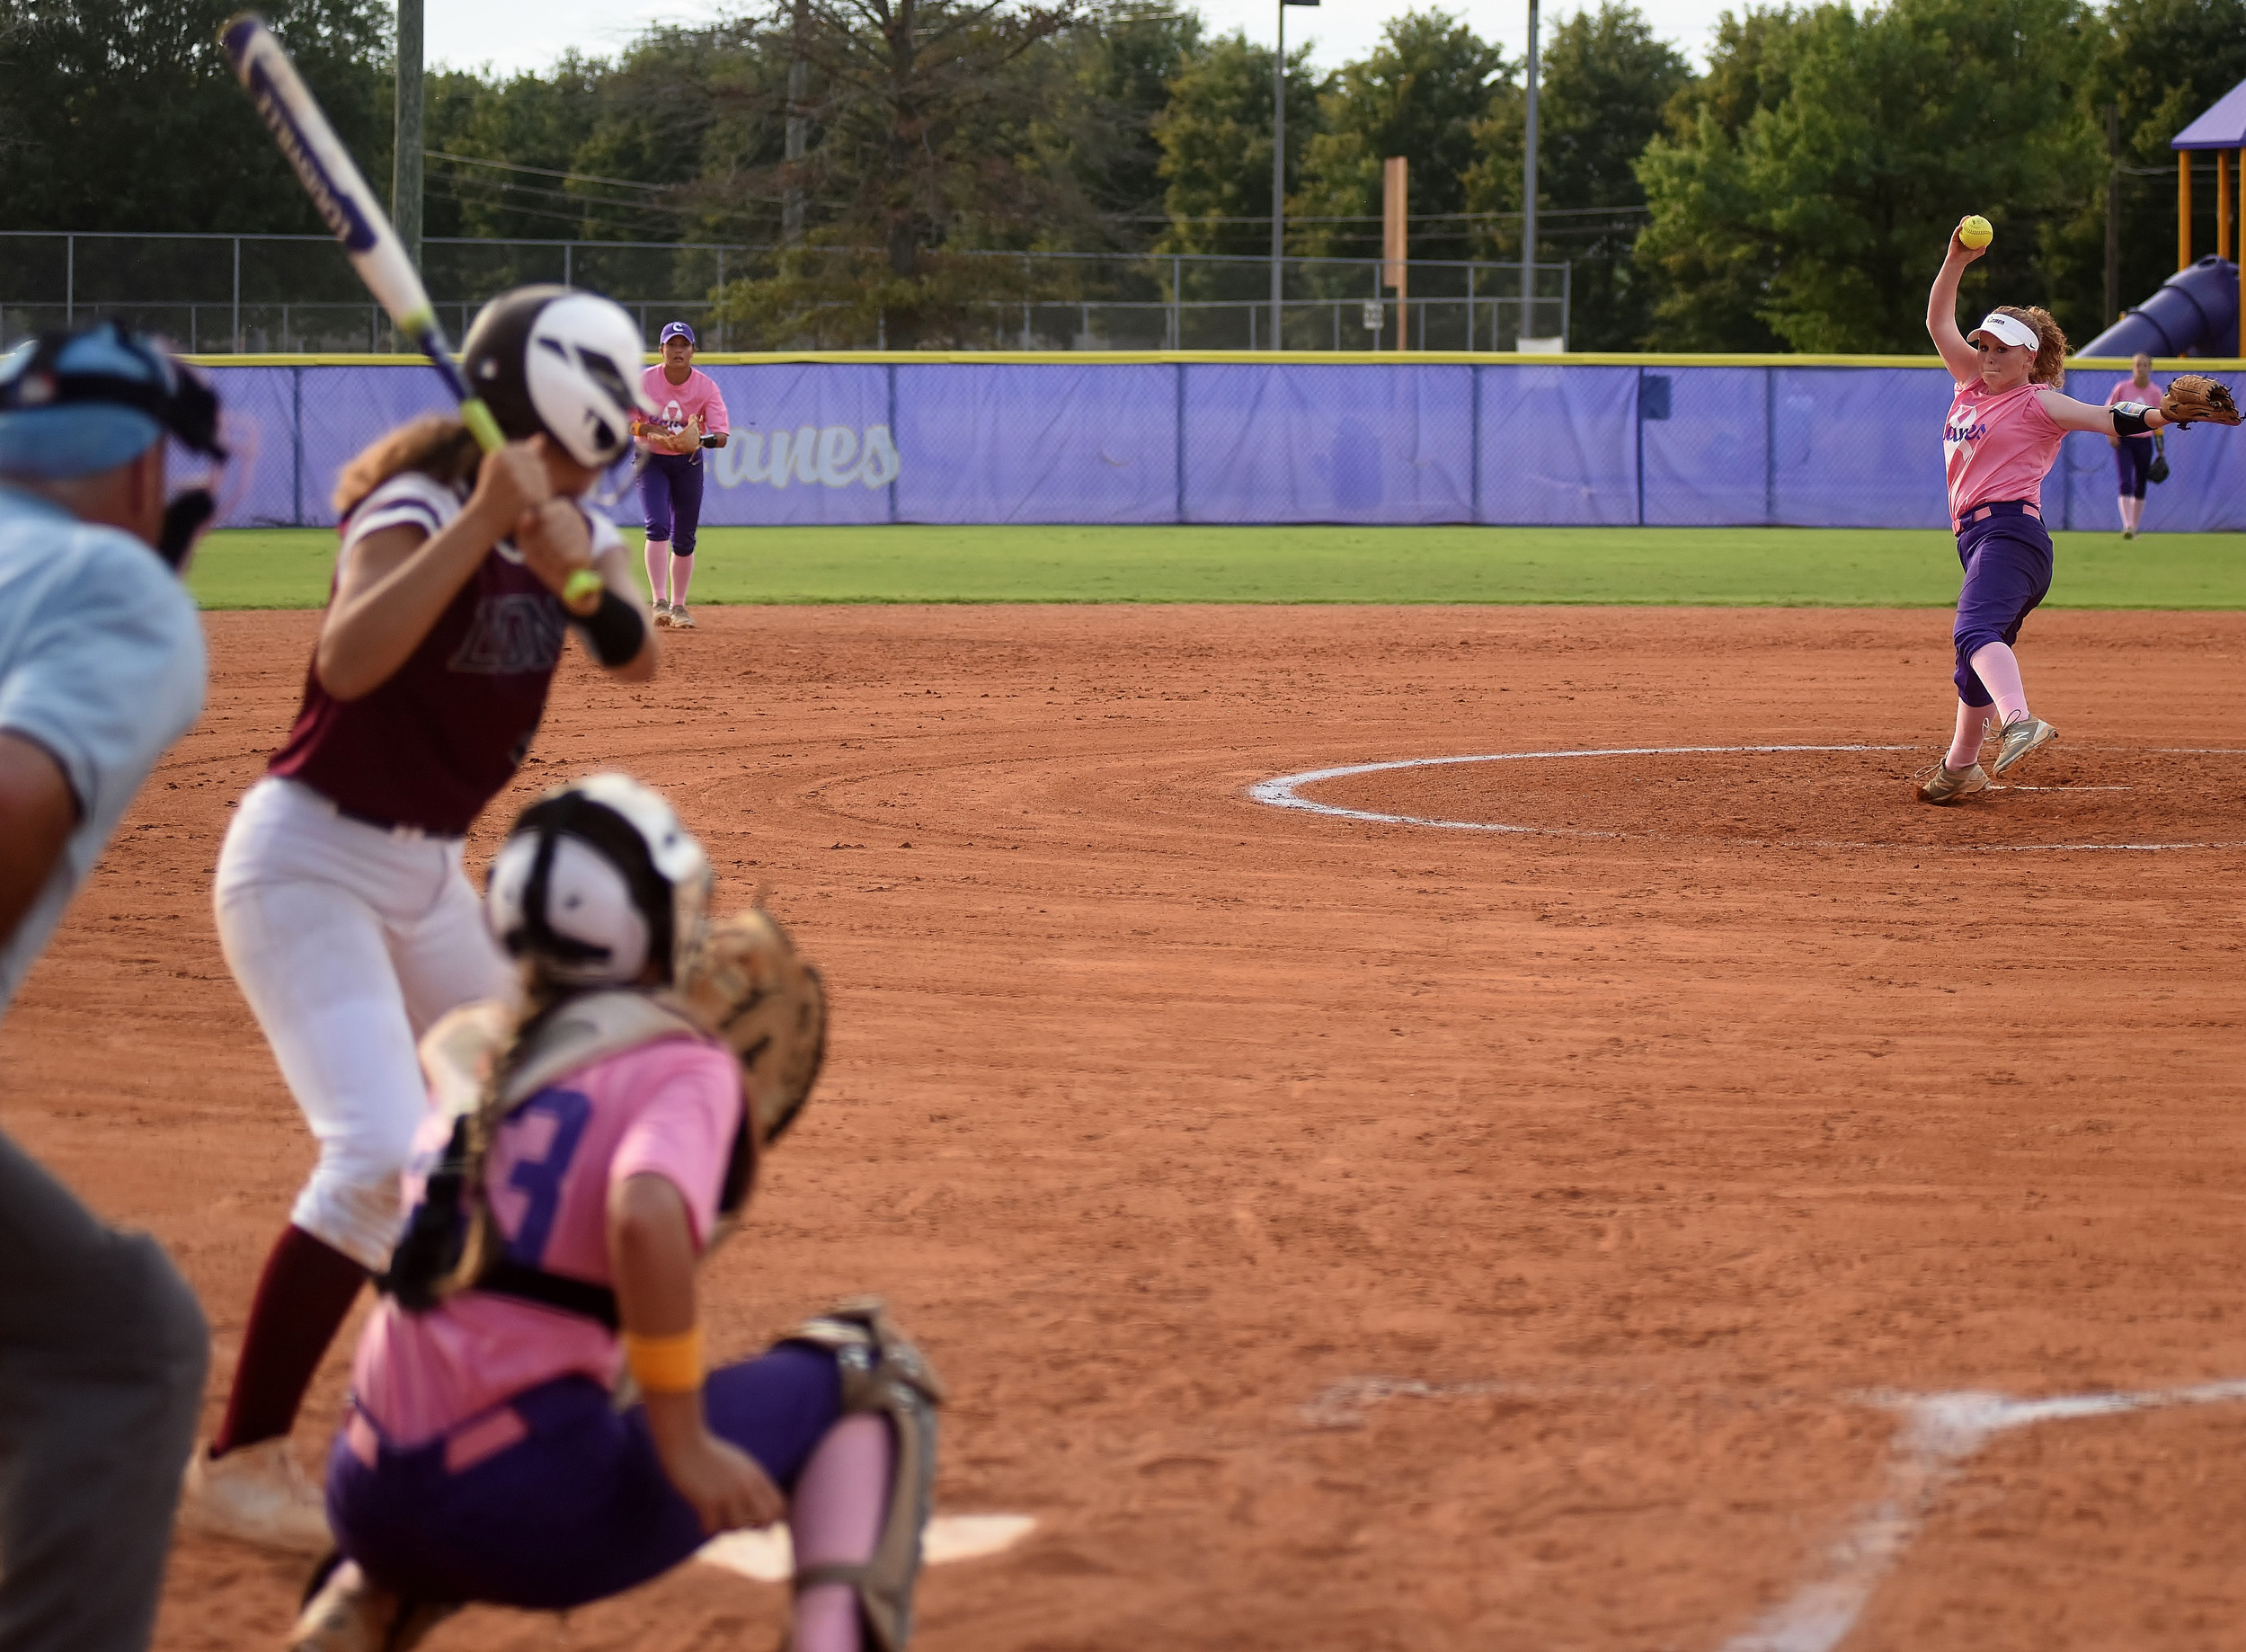 Cartersville pitcher Anna Kate McElhaney delivers to a Central-Carroll batter at the plate in the top of the third inning Thursday.